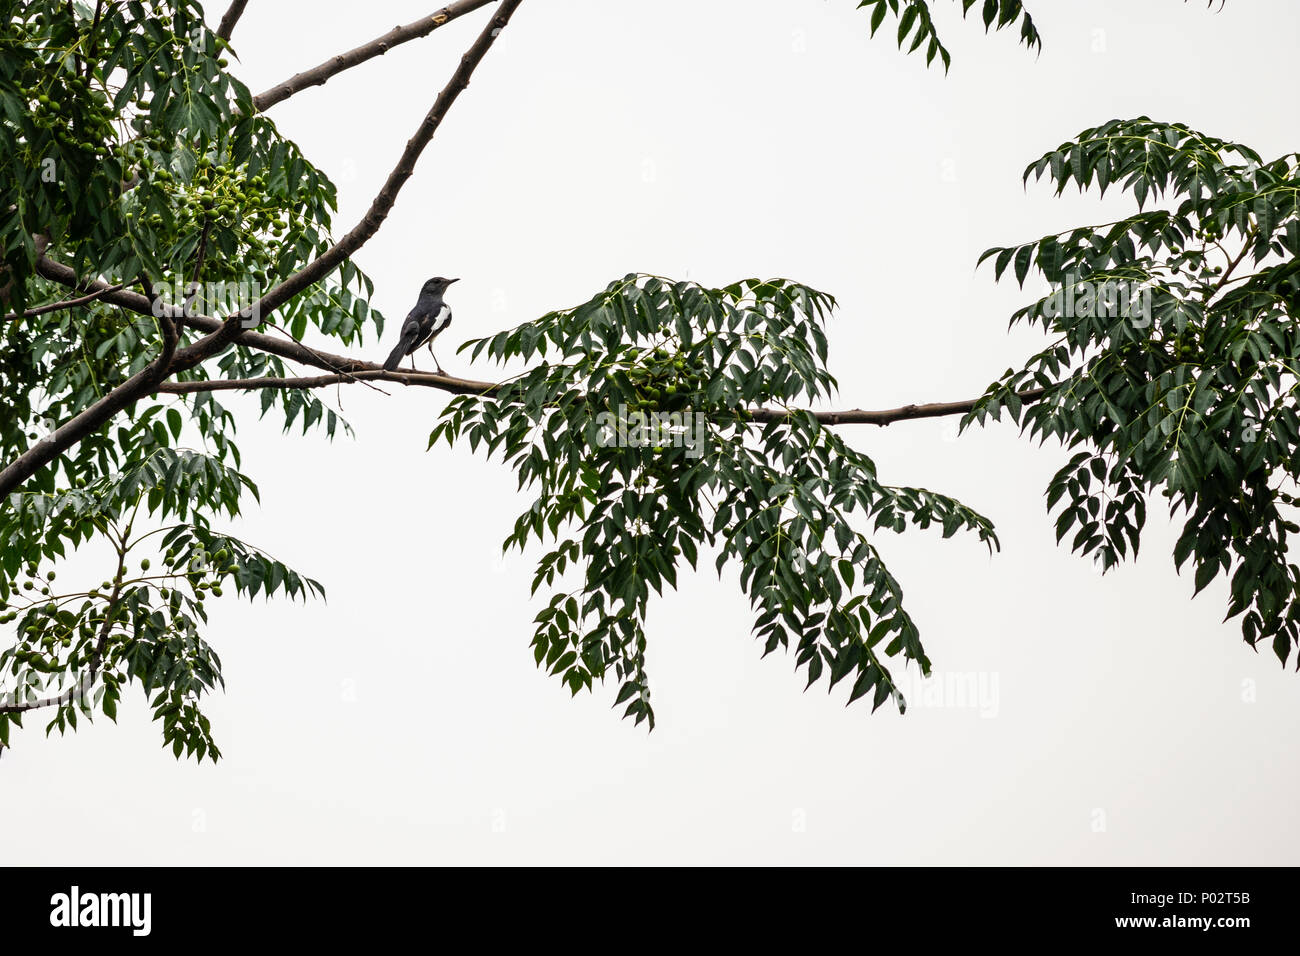 Indian Magpie Robin on a tree branch outside my house in Jalandhar, Punjab. - Stock Image